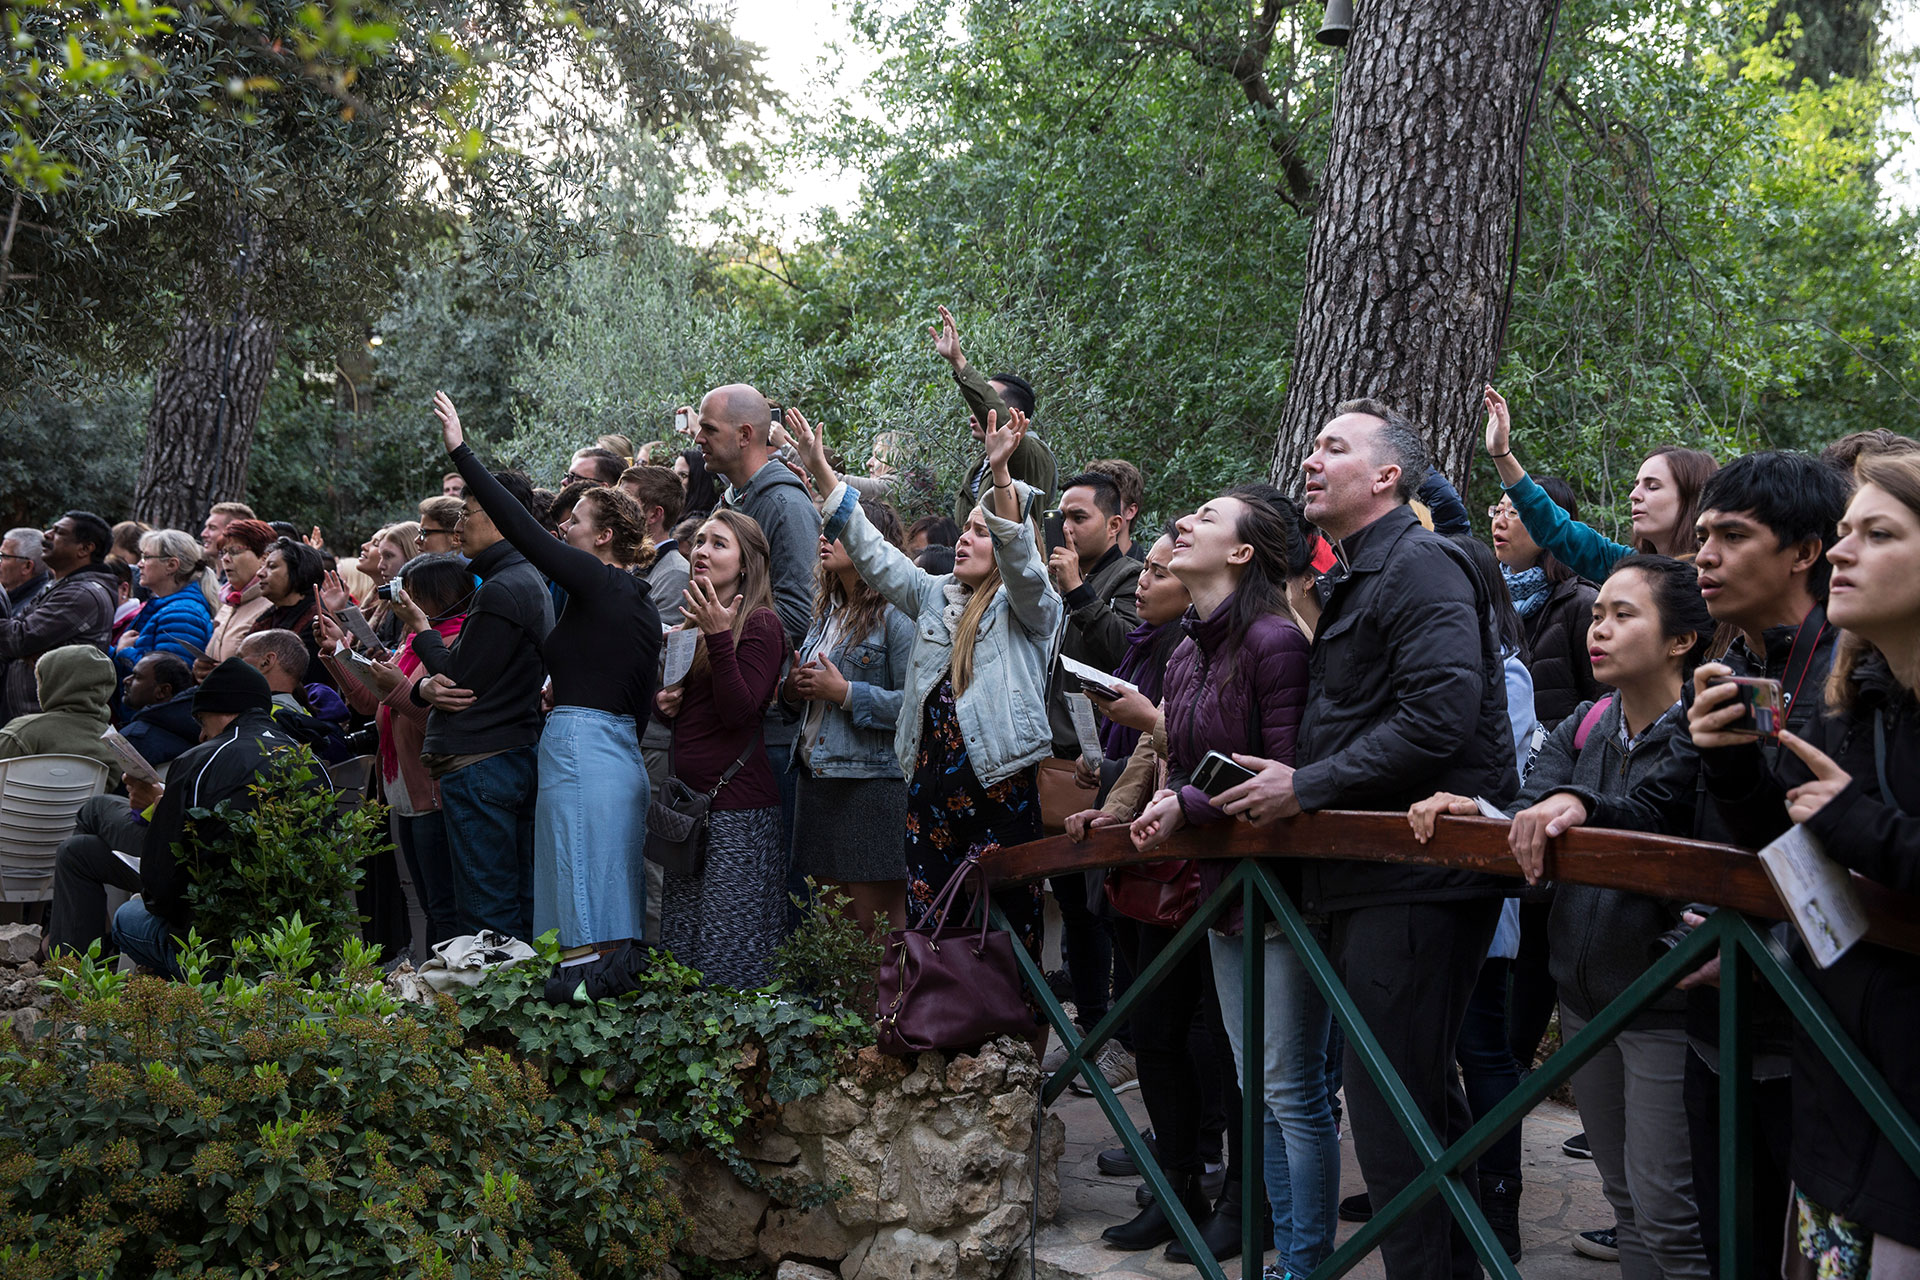 Hundreds of Christians around the world celebrate the Resurrection of Jesus Christ during a sunrise prayer at the Garden Tomb in east Jerusalem on April 1,2018.The Garden Tomb is a site where some Christians believe the resurrection of Jesus Christ took place. Other Christians believe the most likely site is at the Church of the Holy Sepulchre inside the Old City of Jerusalem. (Photo by Heidi Levine for The GroundTruth Project).